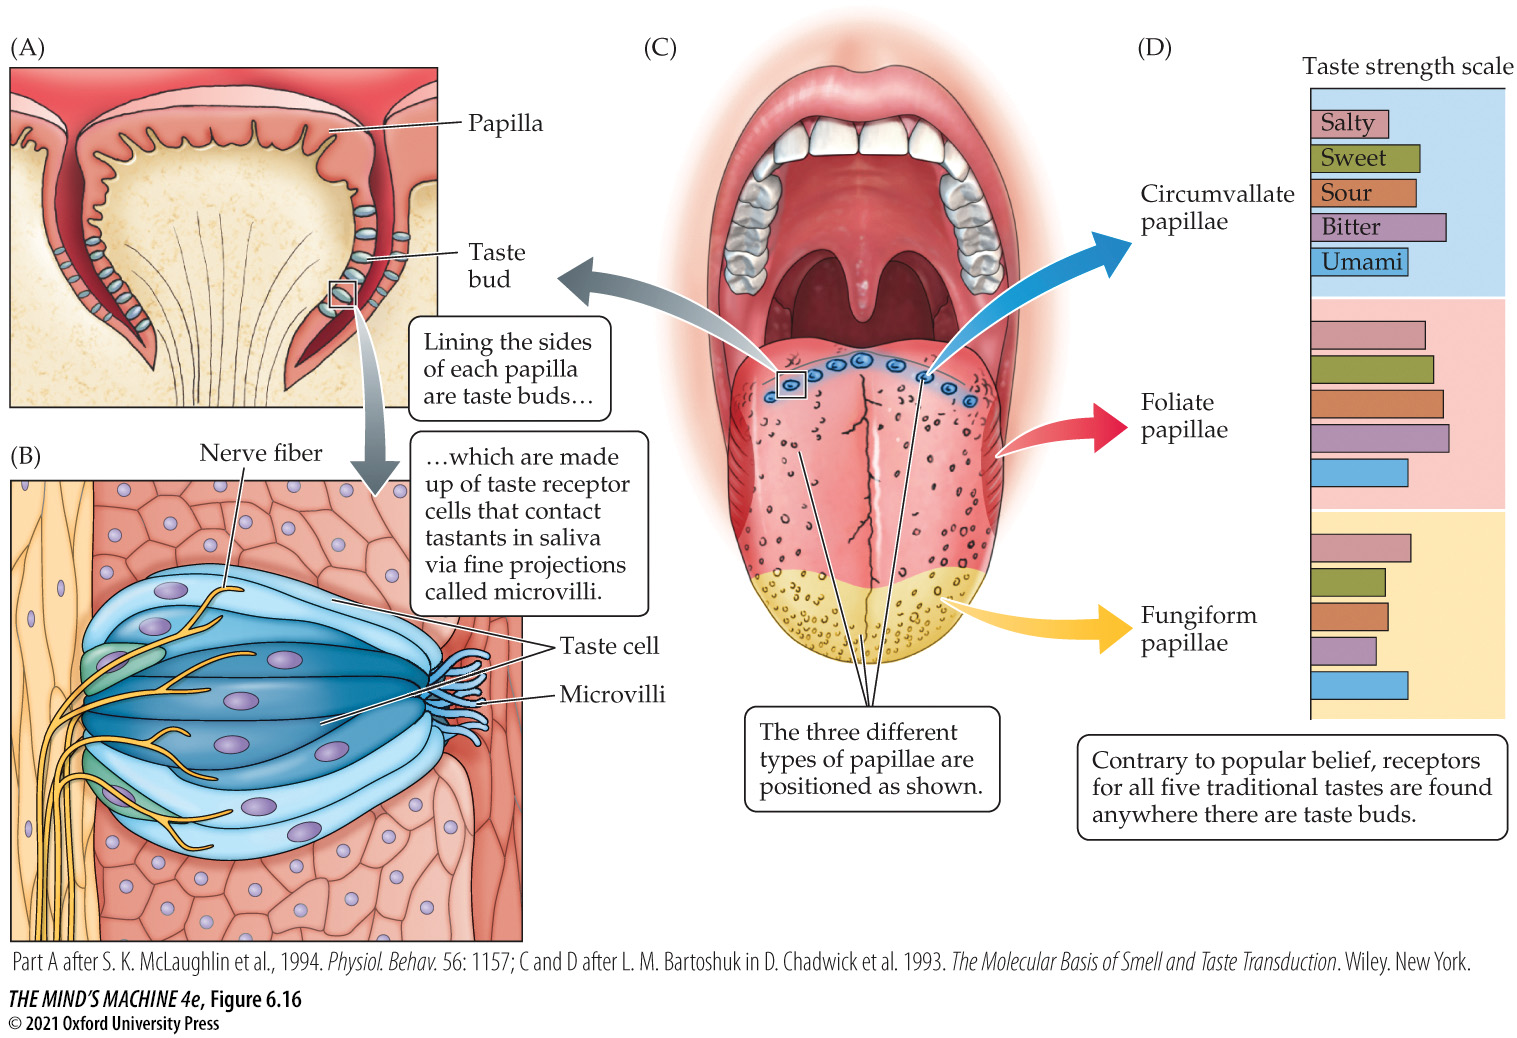 The tongue shows taste buds and taste receptor cells. (A). Papilla and taste bud. (B) Nerve fiber, taste pore, and microvilli. Lining the sides of each papilla are taste buds which are made up of taste receptor cells that contact tastants in saliva via fine projections called microvilli. The three different types of papillae are circumvallate, foliate papillae, and fungiform papillae.